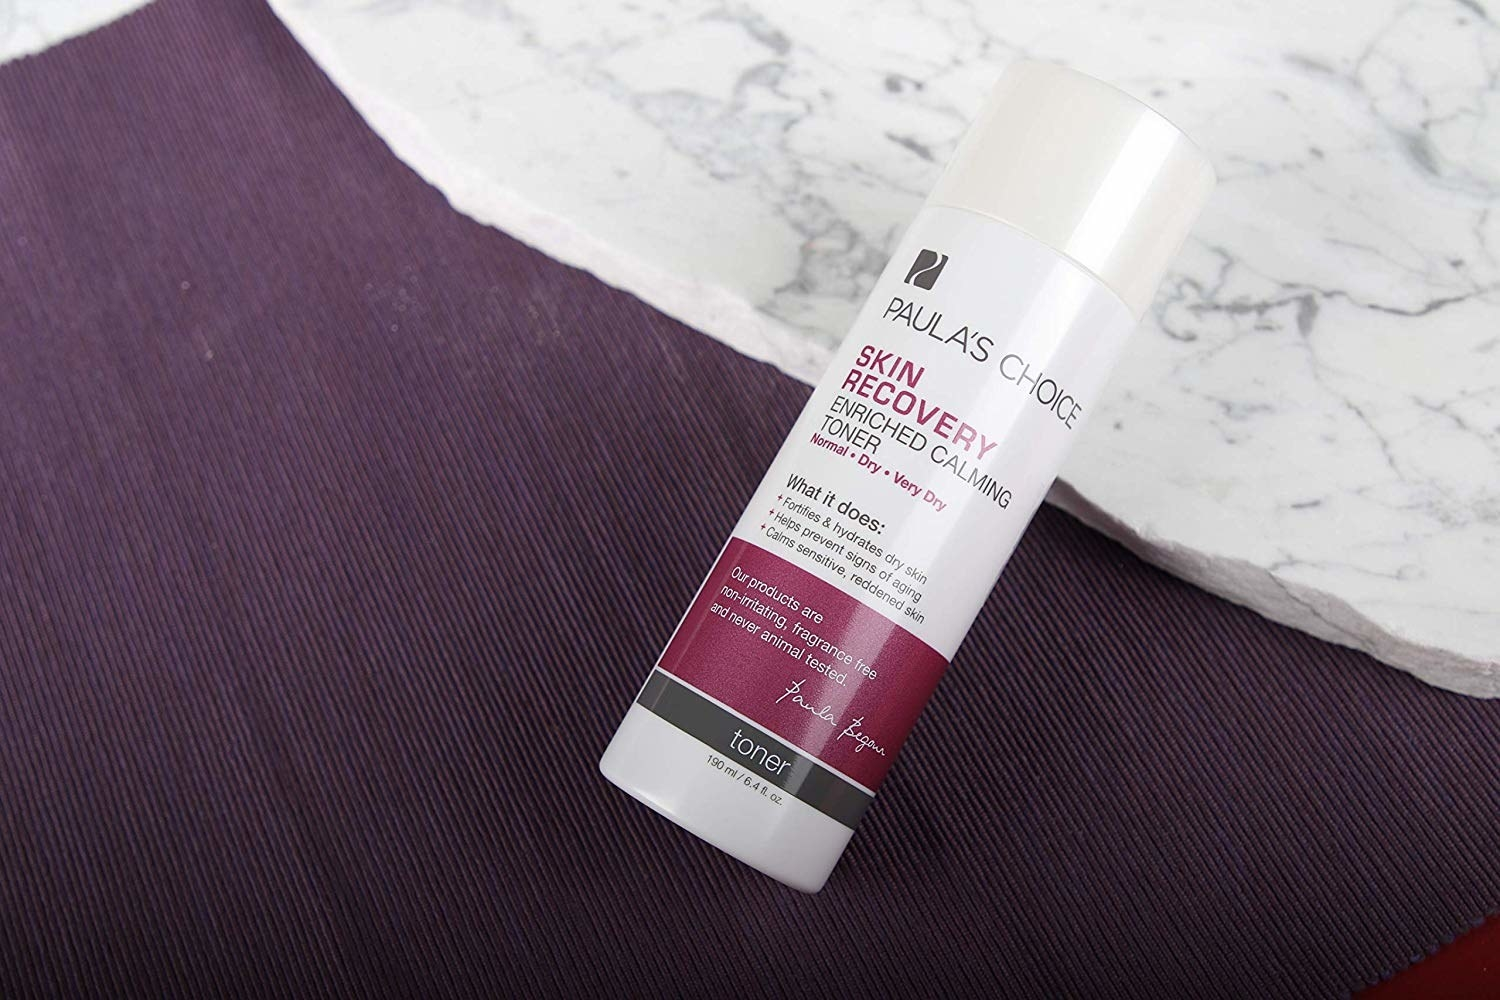 A bottle of the Paula's Choice skin recovery